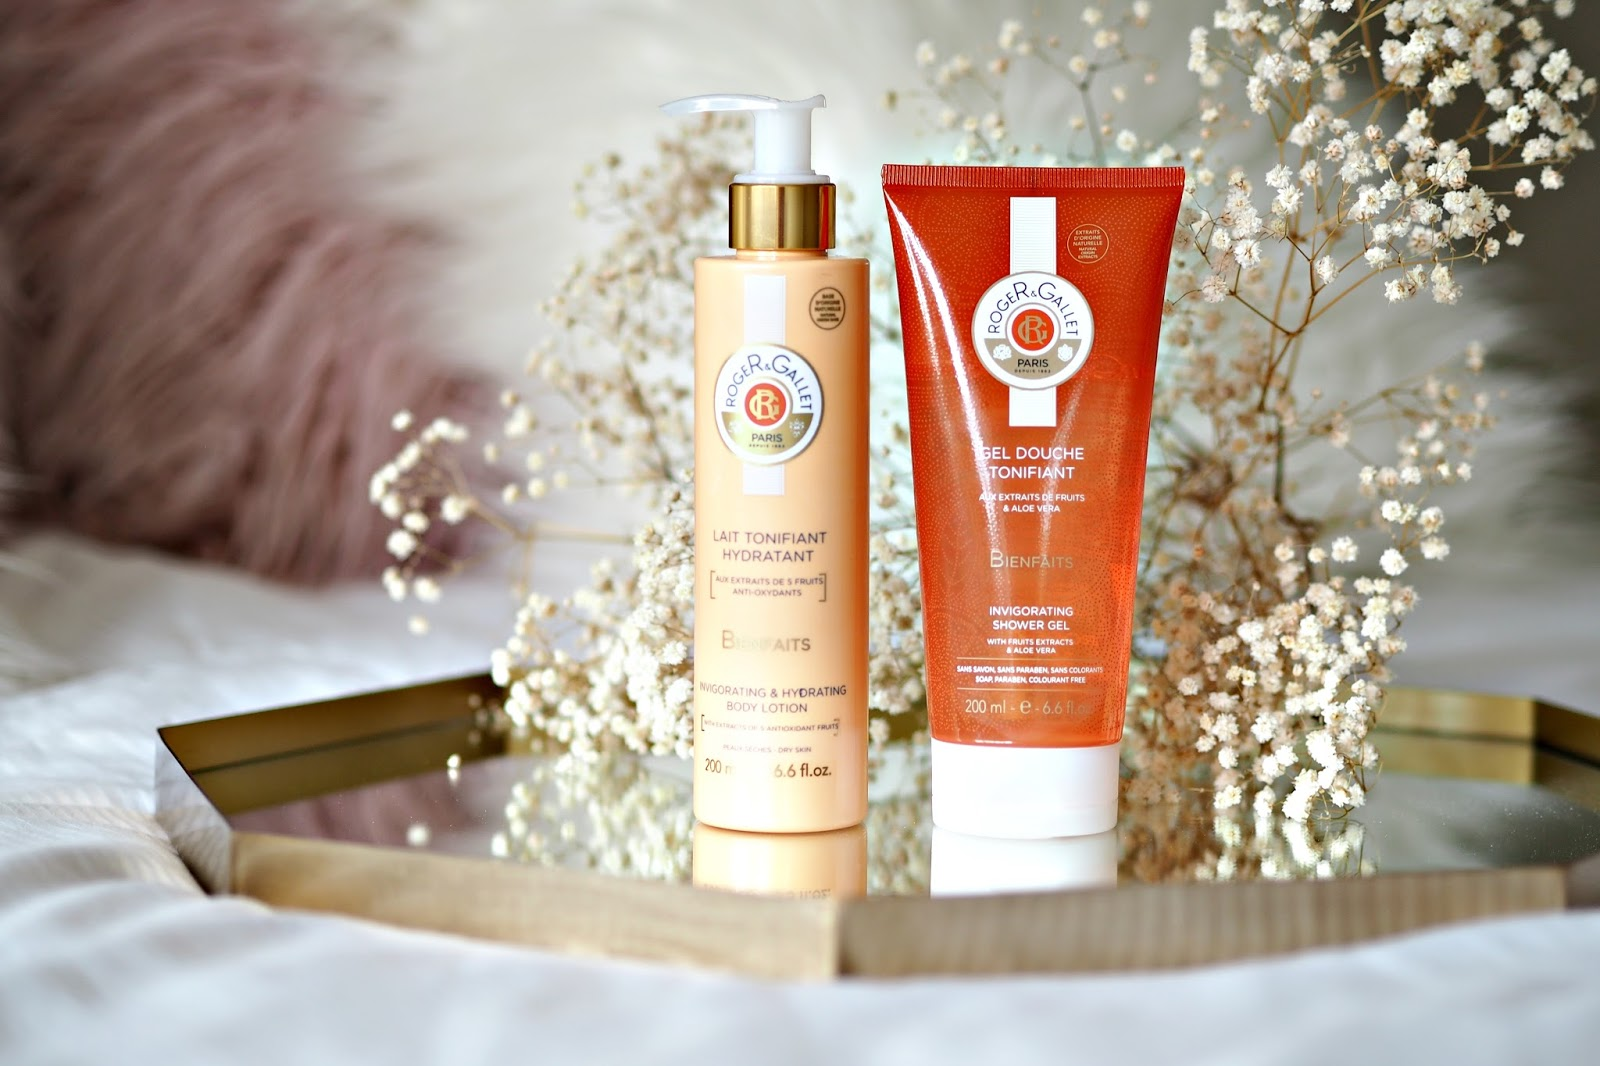 Roger & Gallet Bienfaits Shower Gel & Body Lotion